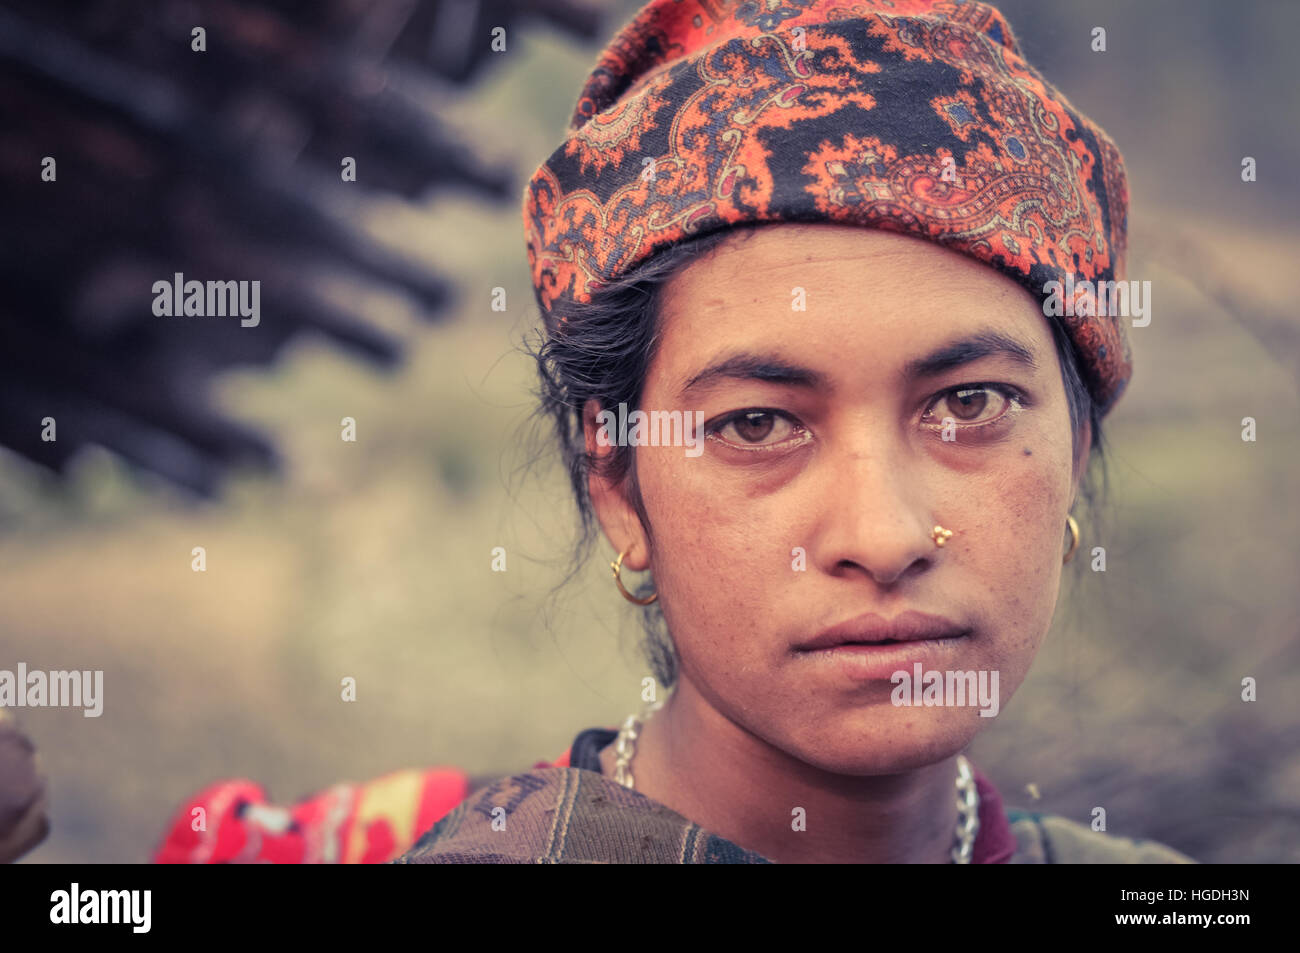 Dolpo, Nepal - circa May 2012: Native woman with piercing and earrings wears orange headcloth with brown eyes in - Stock Image